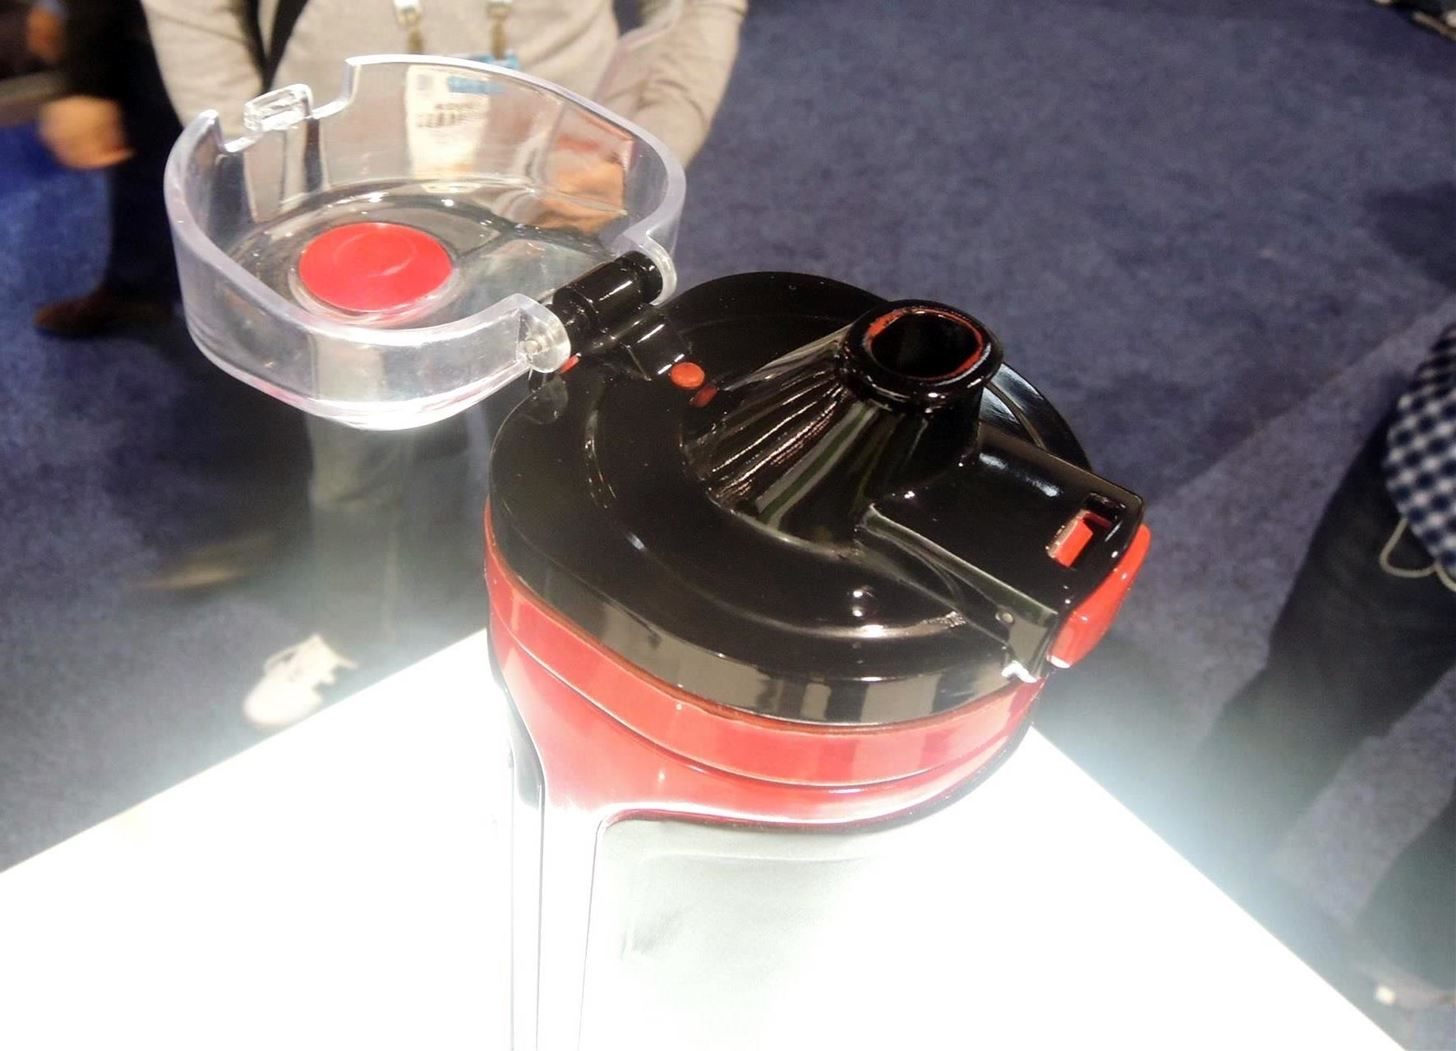 CES 2015: The Swiss Army Knife of Sports Bottles Plays Music & Holds Your Phone, Cash, Keys, & More